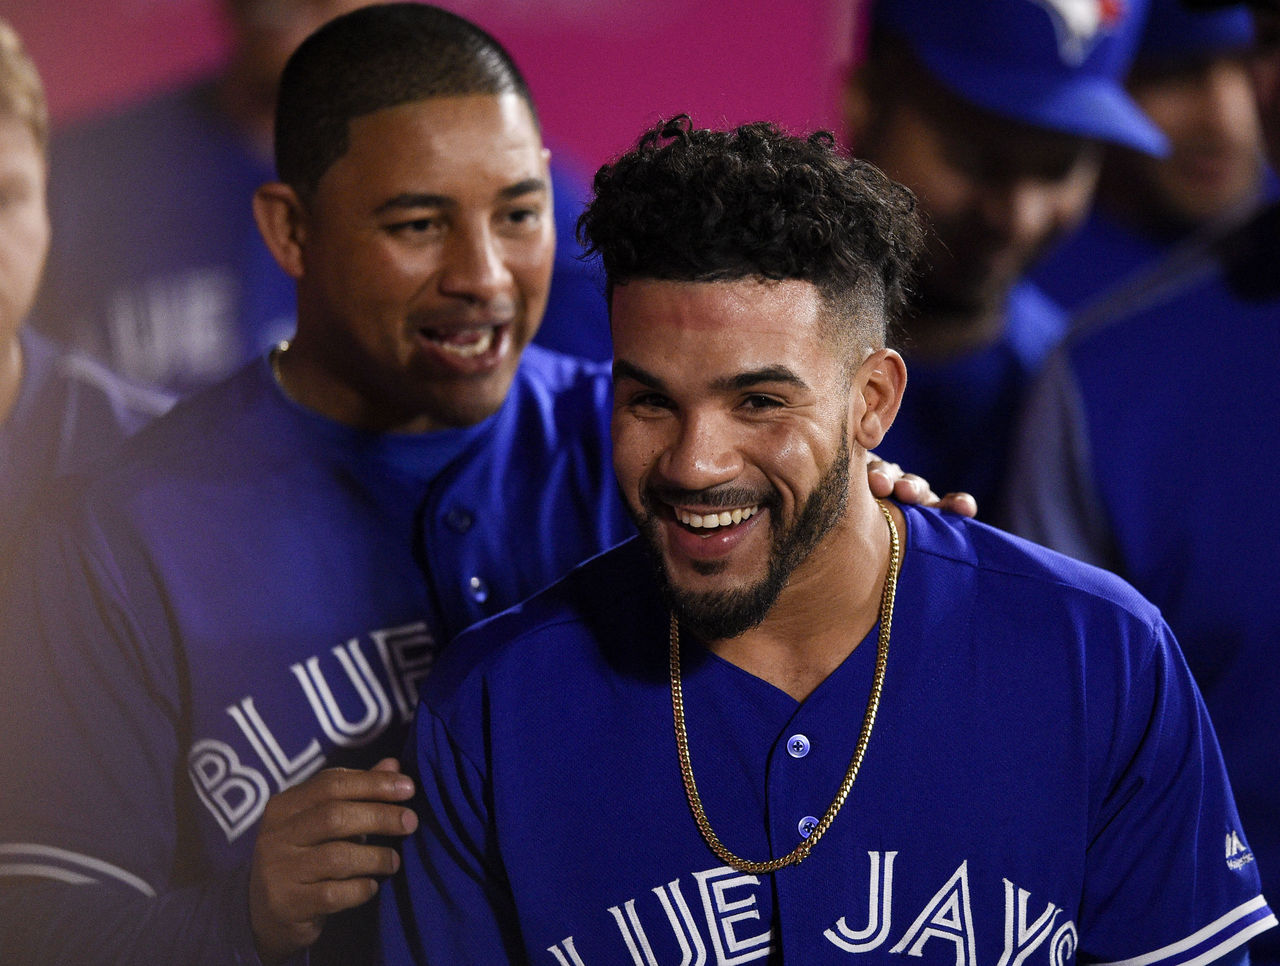 Cropped 2017 04 22t052924z 1443191850 nocid rtrmadp 3 mlb toronto blue jays at los angeles angels